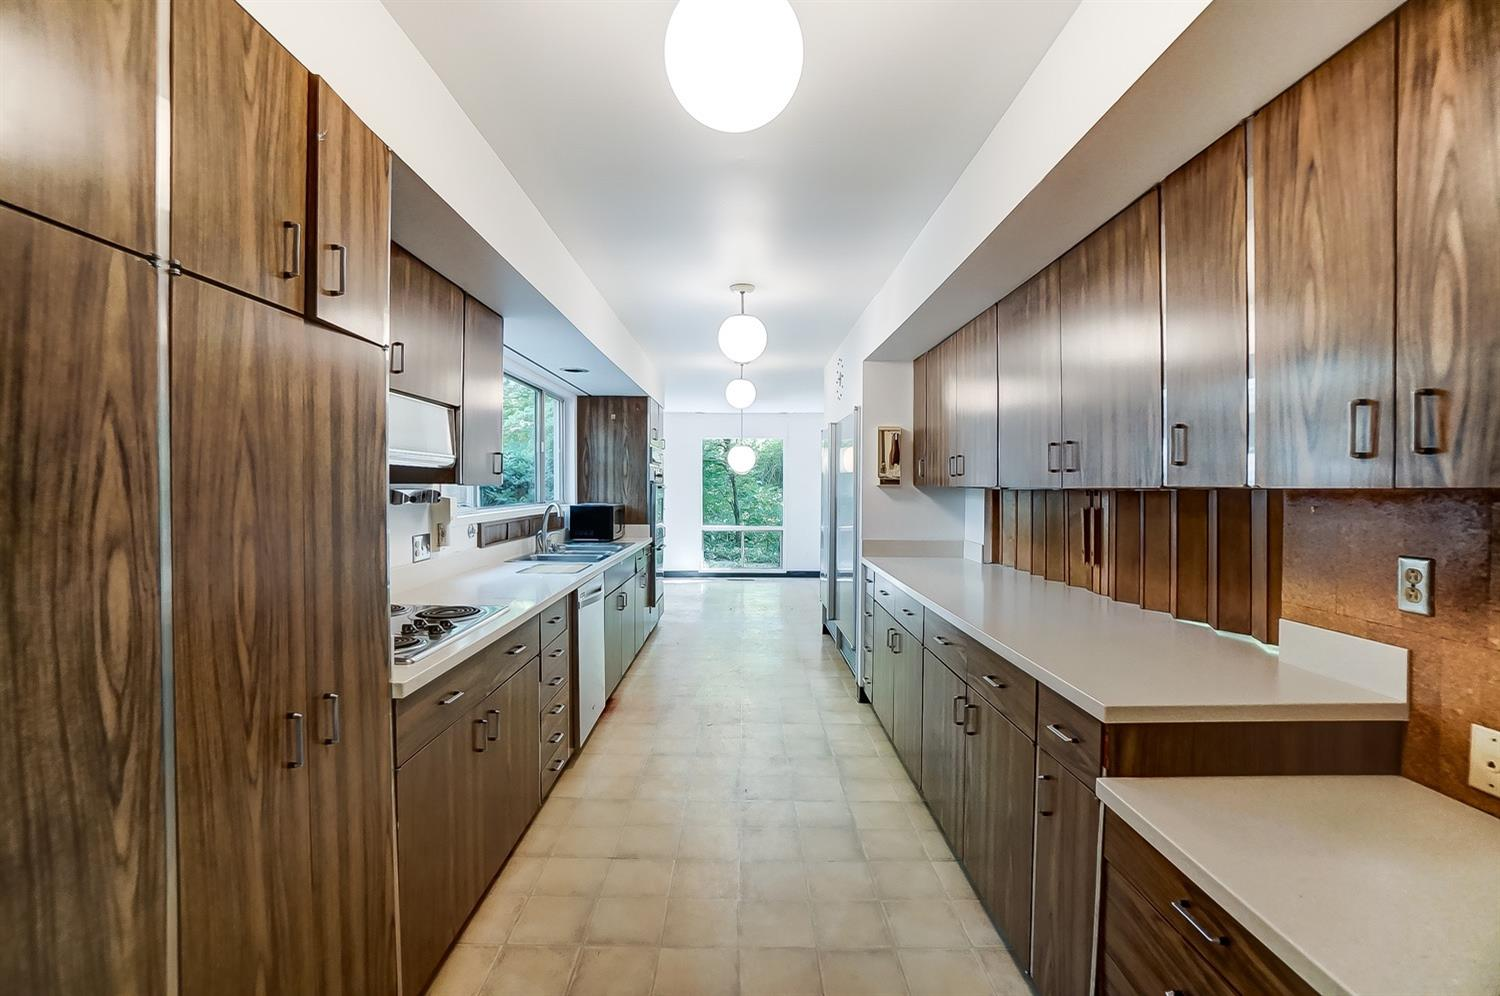 This vantage point show the kitchen's planning desk, the passthrough opening with accordion slider doors and opening breakfast room. Original vintage spherical lighting!